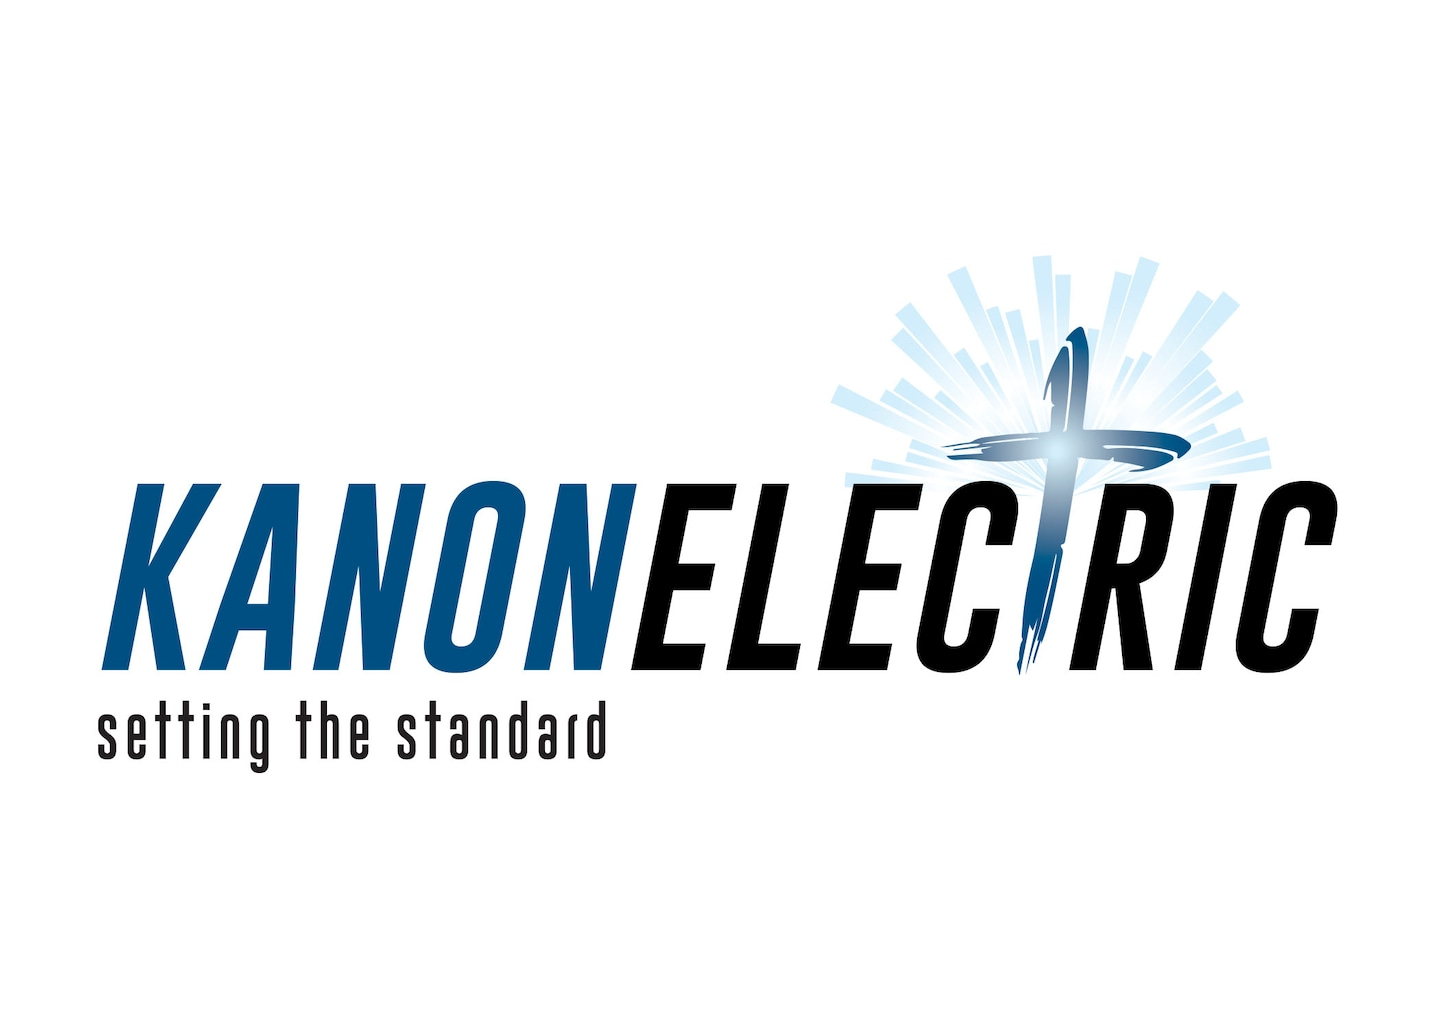 KANON ELECTRIC logo